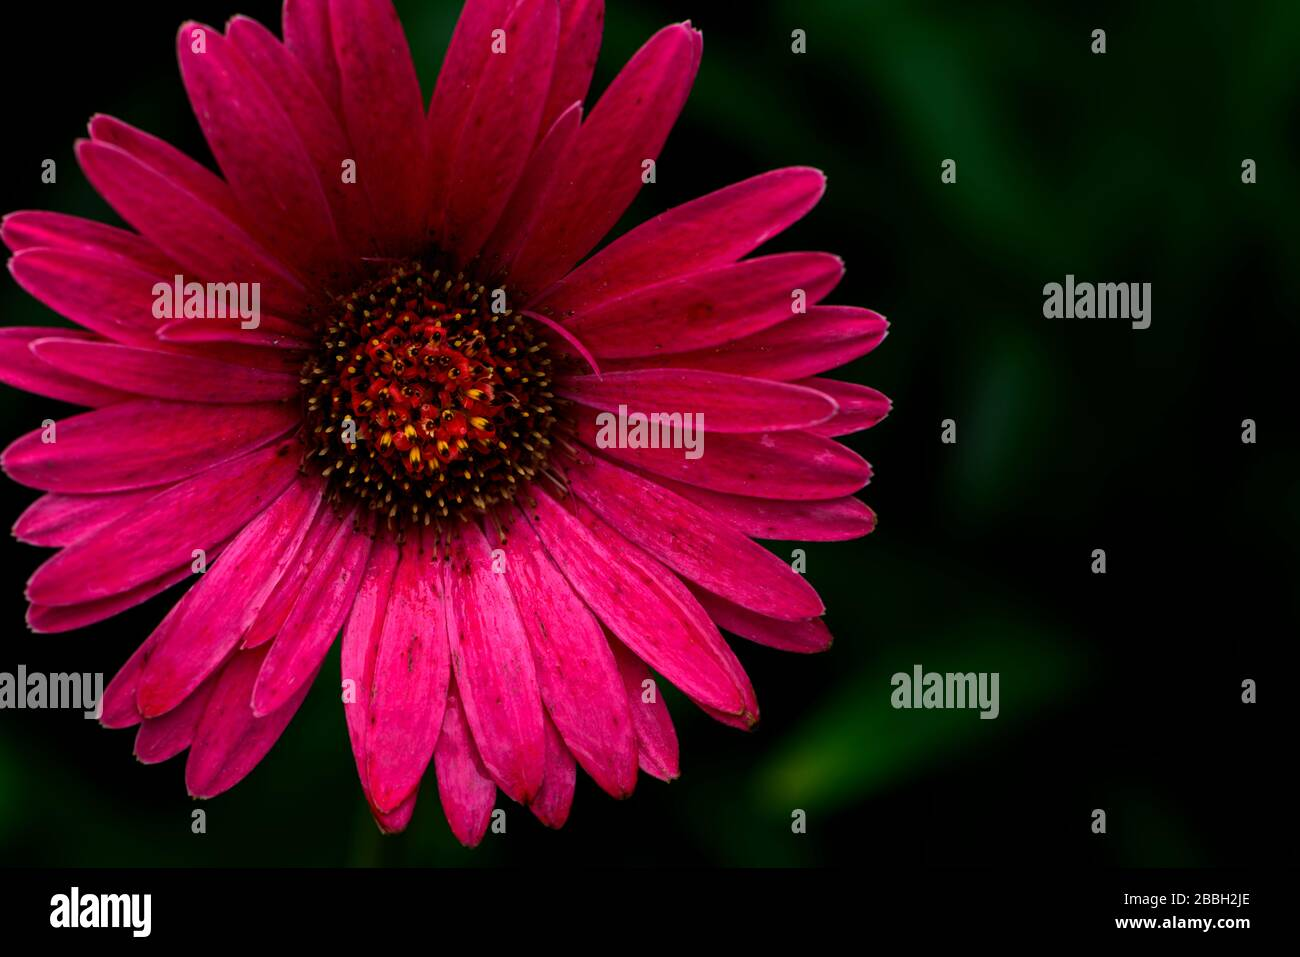 Imperfect Flower High Resolution Stock Photography And Images Alamy